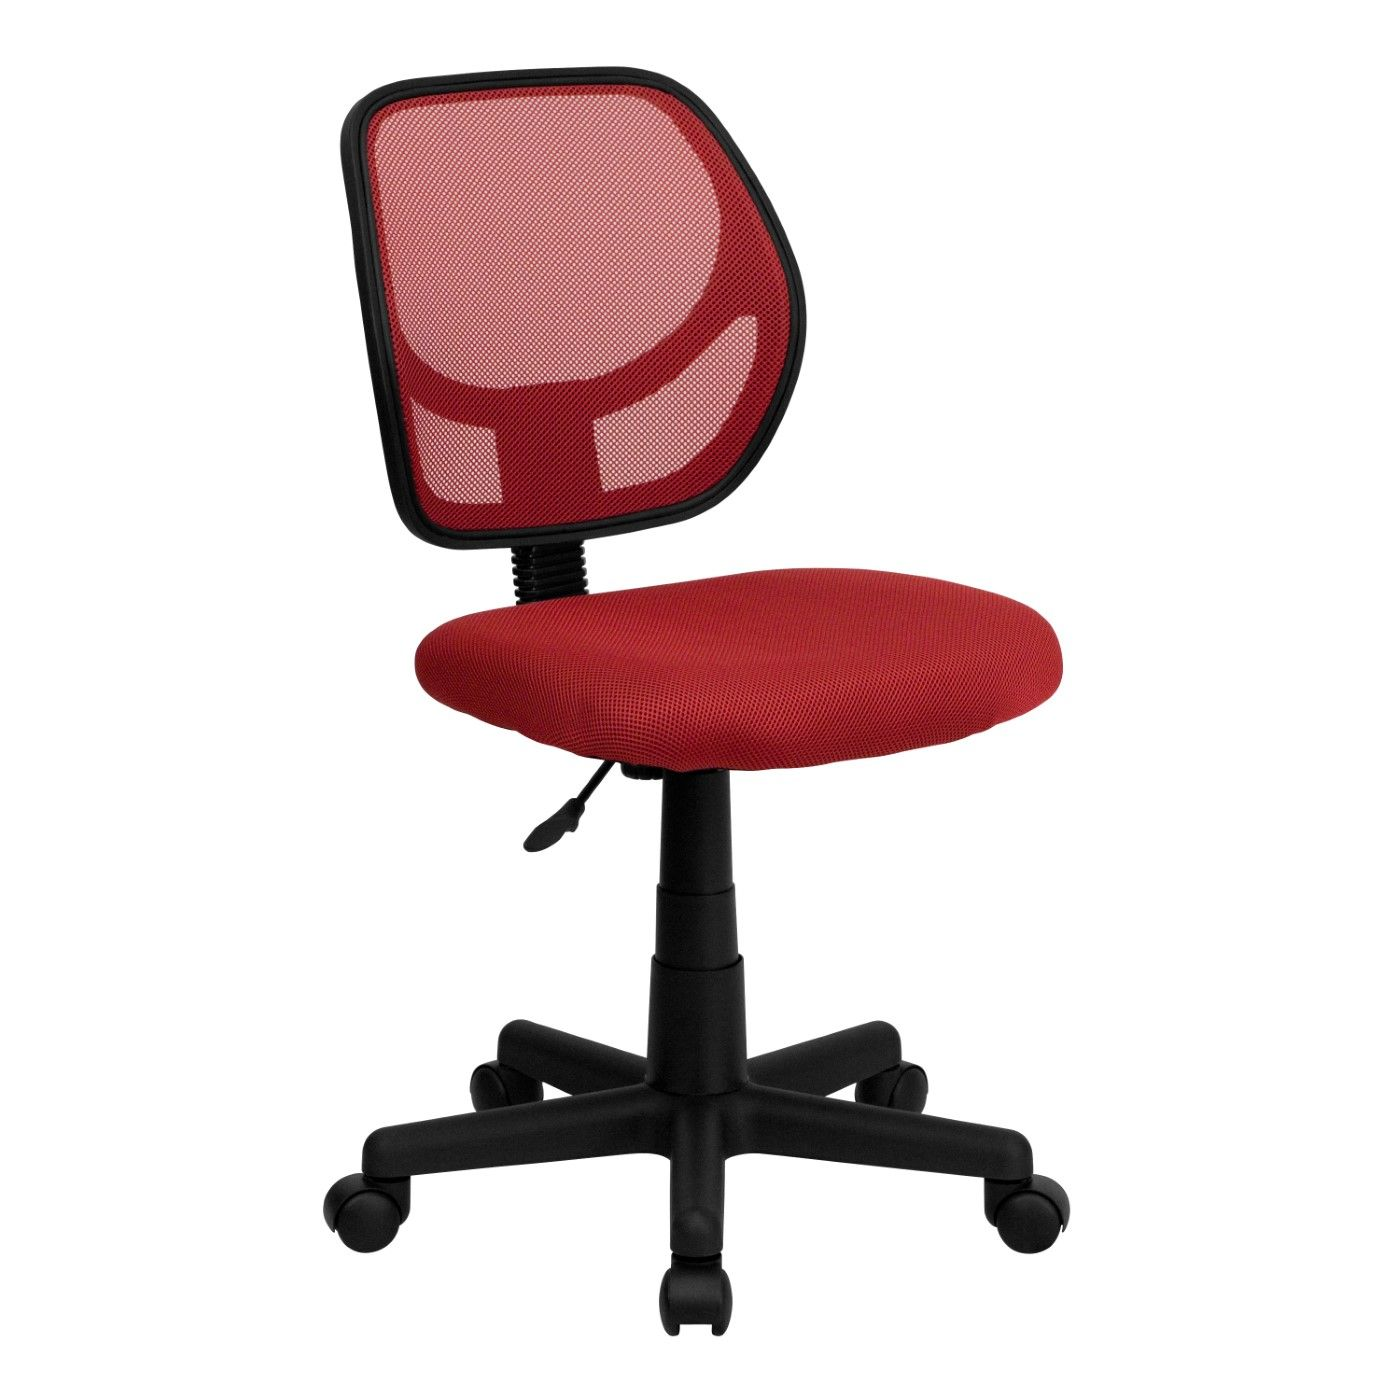 Low Back Red Mesh Swivel Task Office Chair